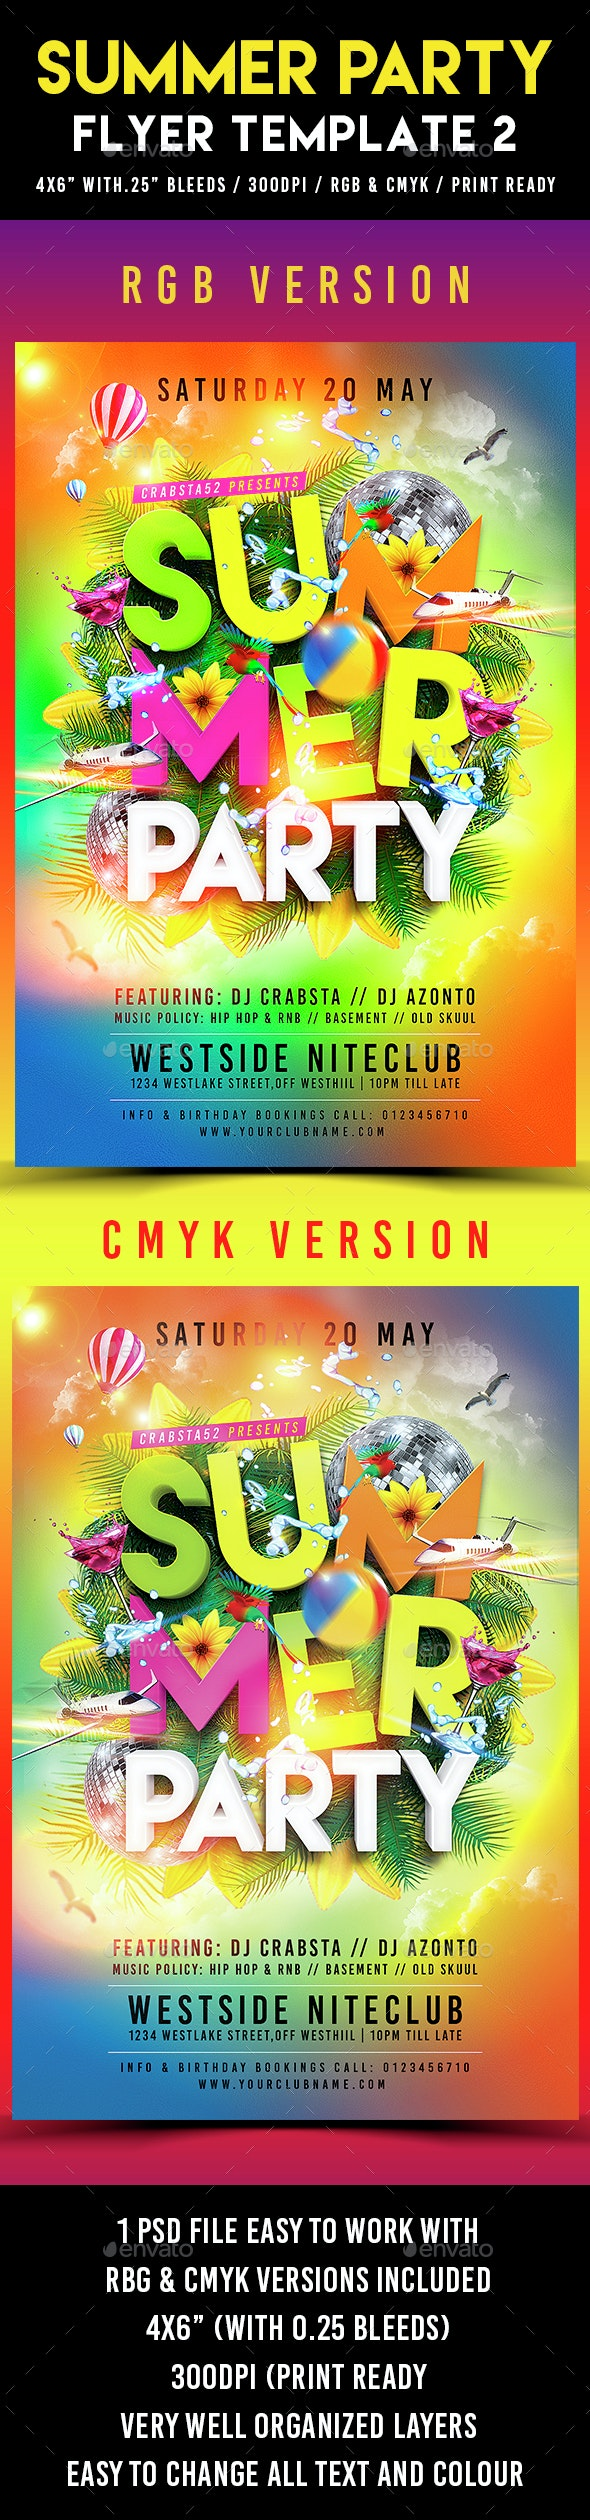 Summer Party Flyer Template 2 - Clubs & Parties Events